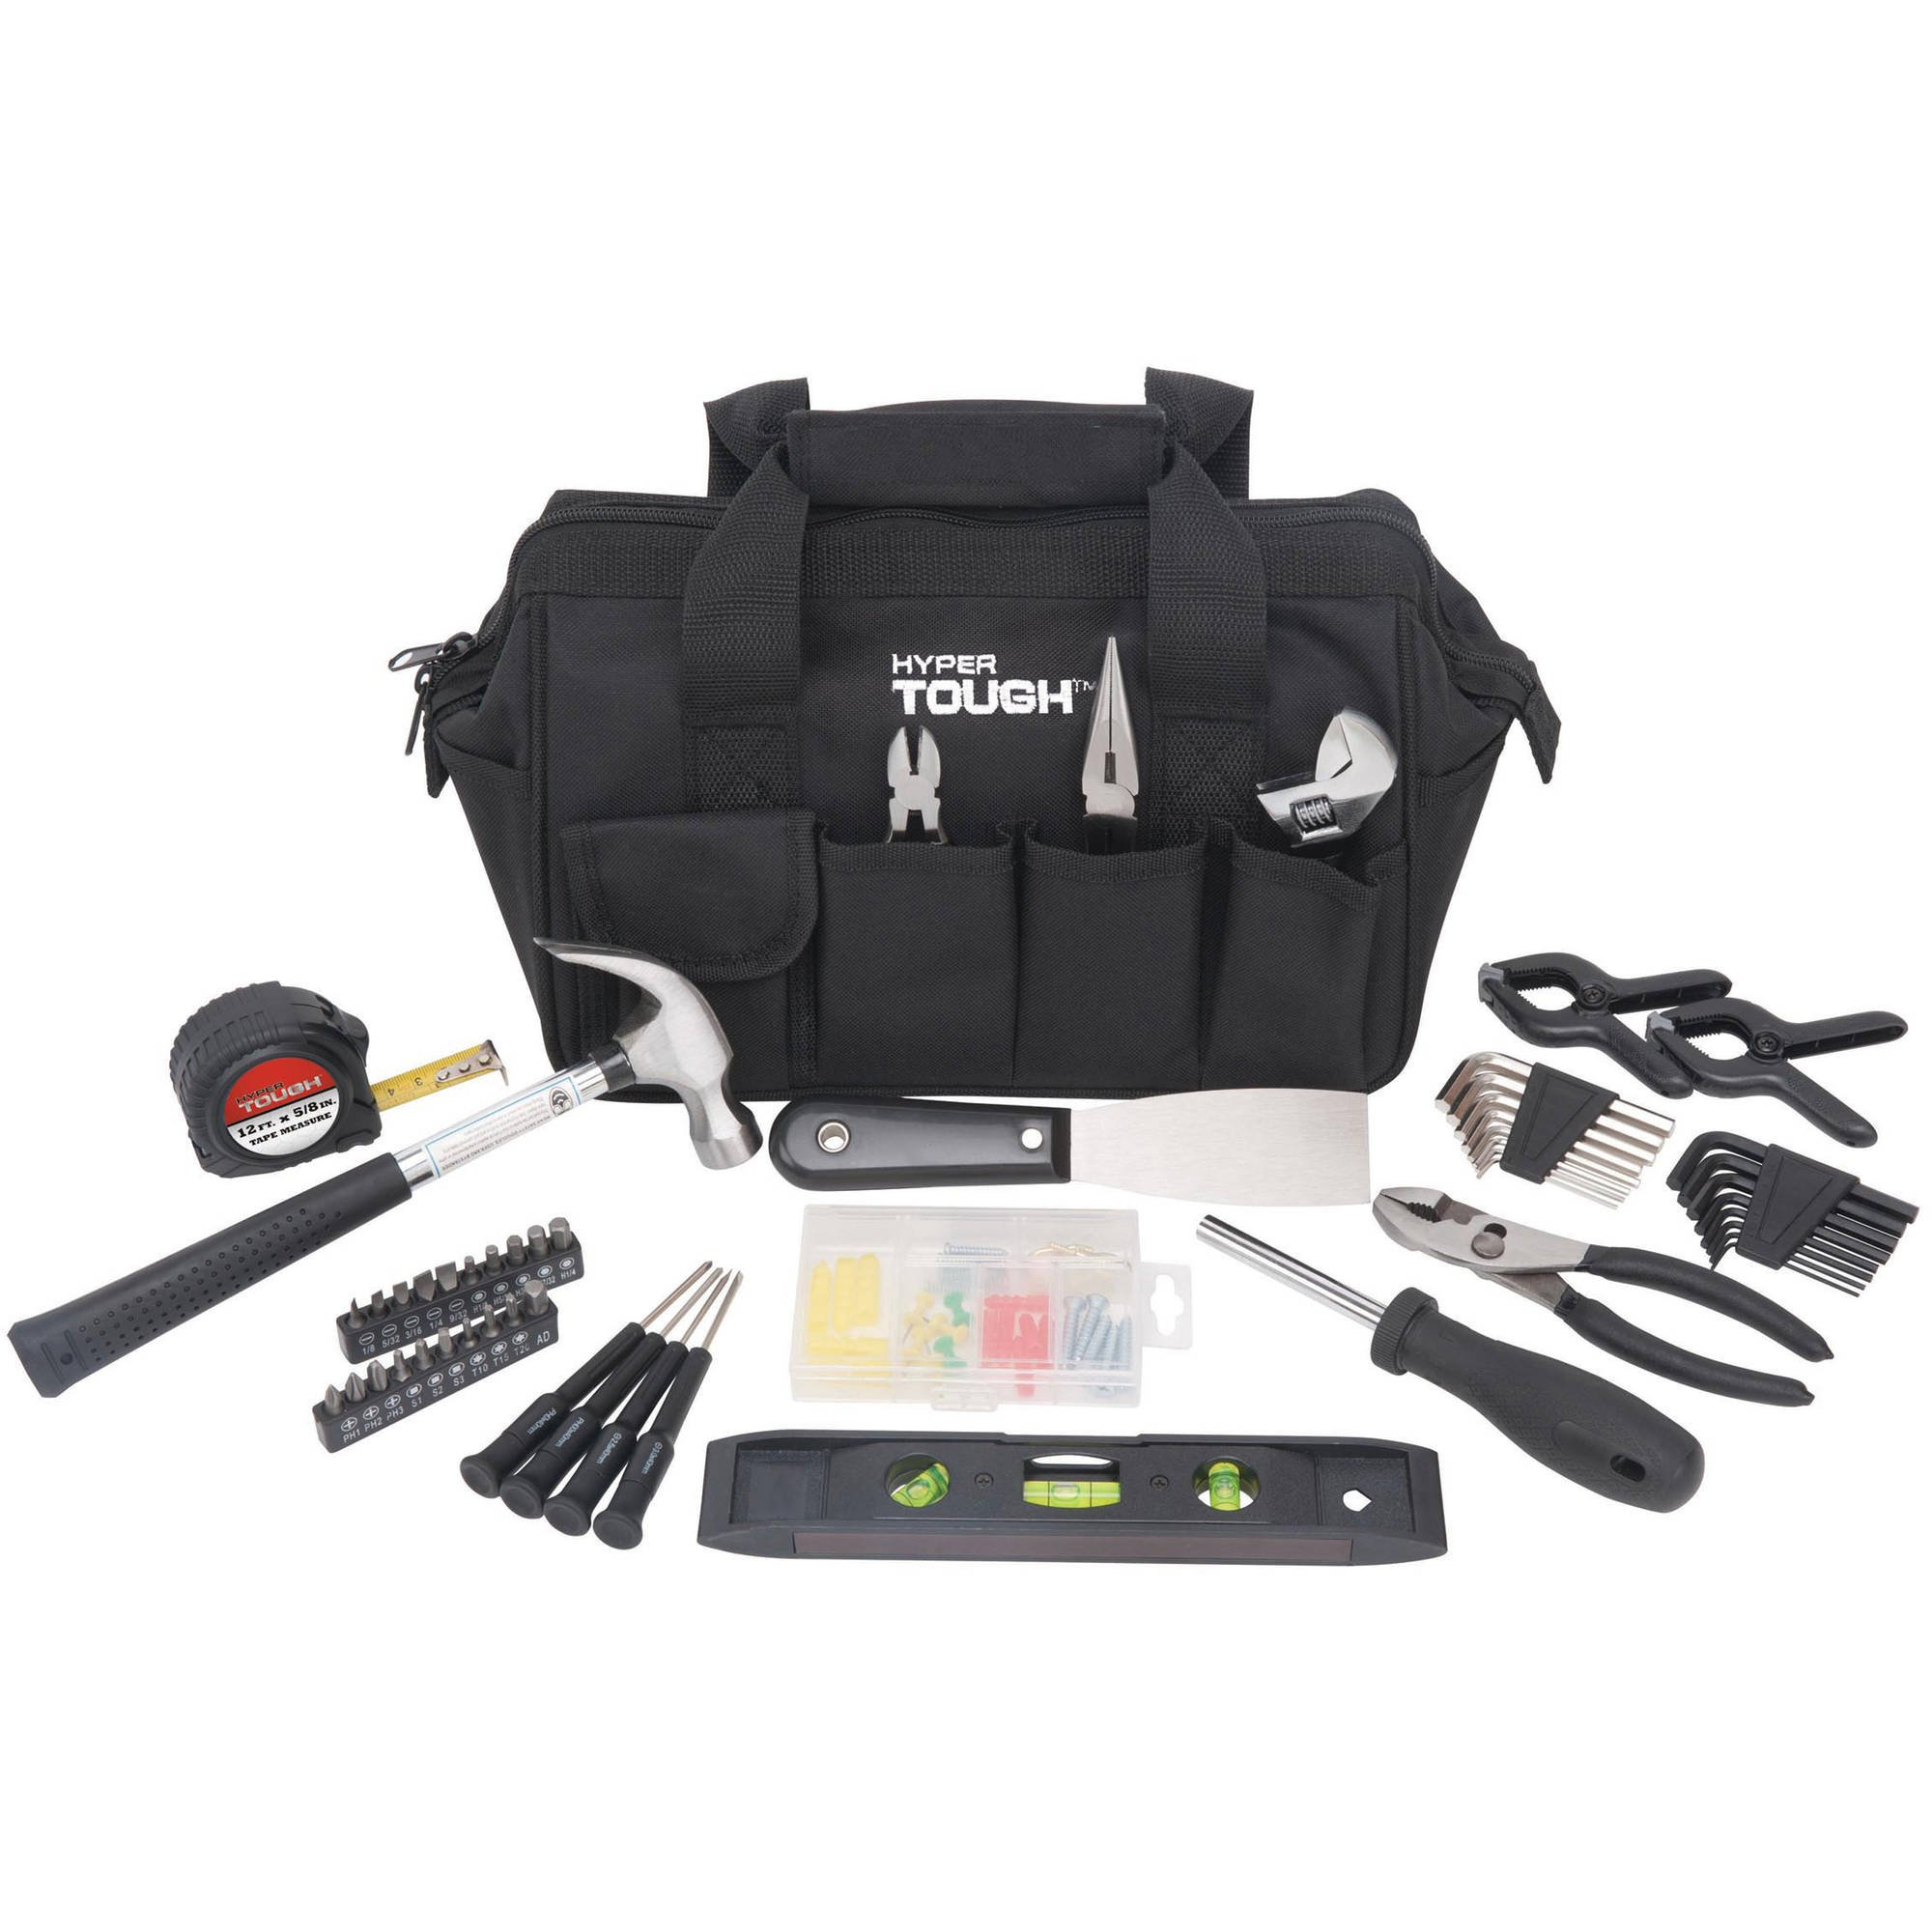 Hyper Tough 53-Piece Around the House Tool Set with Handy Tool Bag, Black